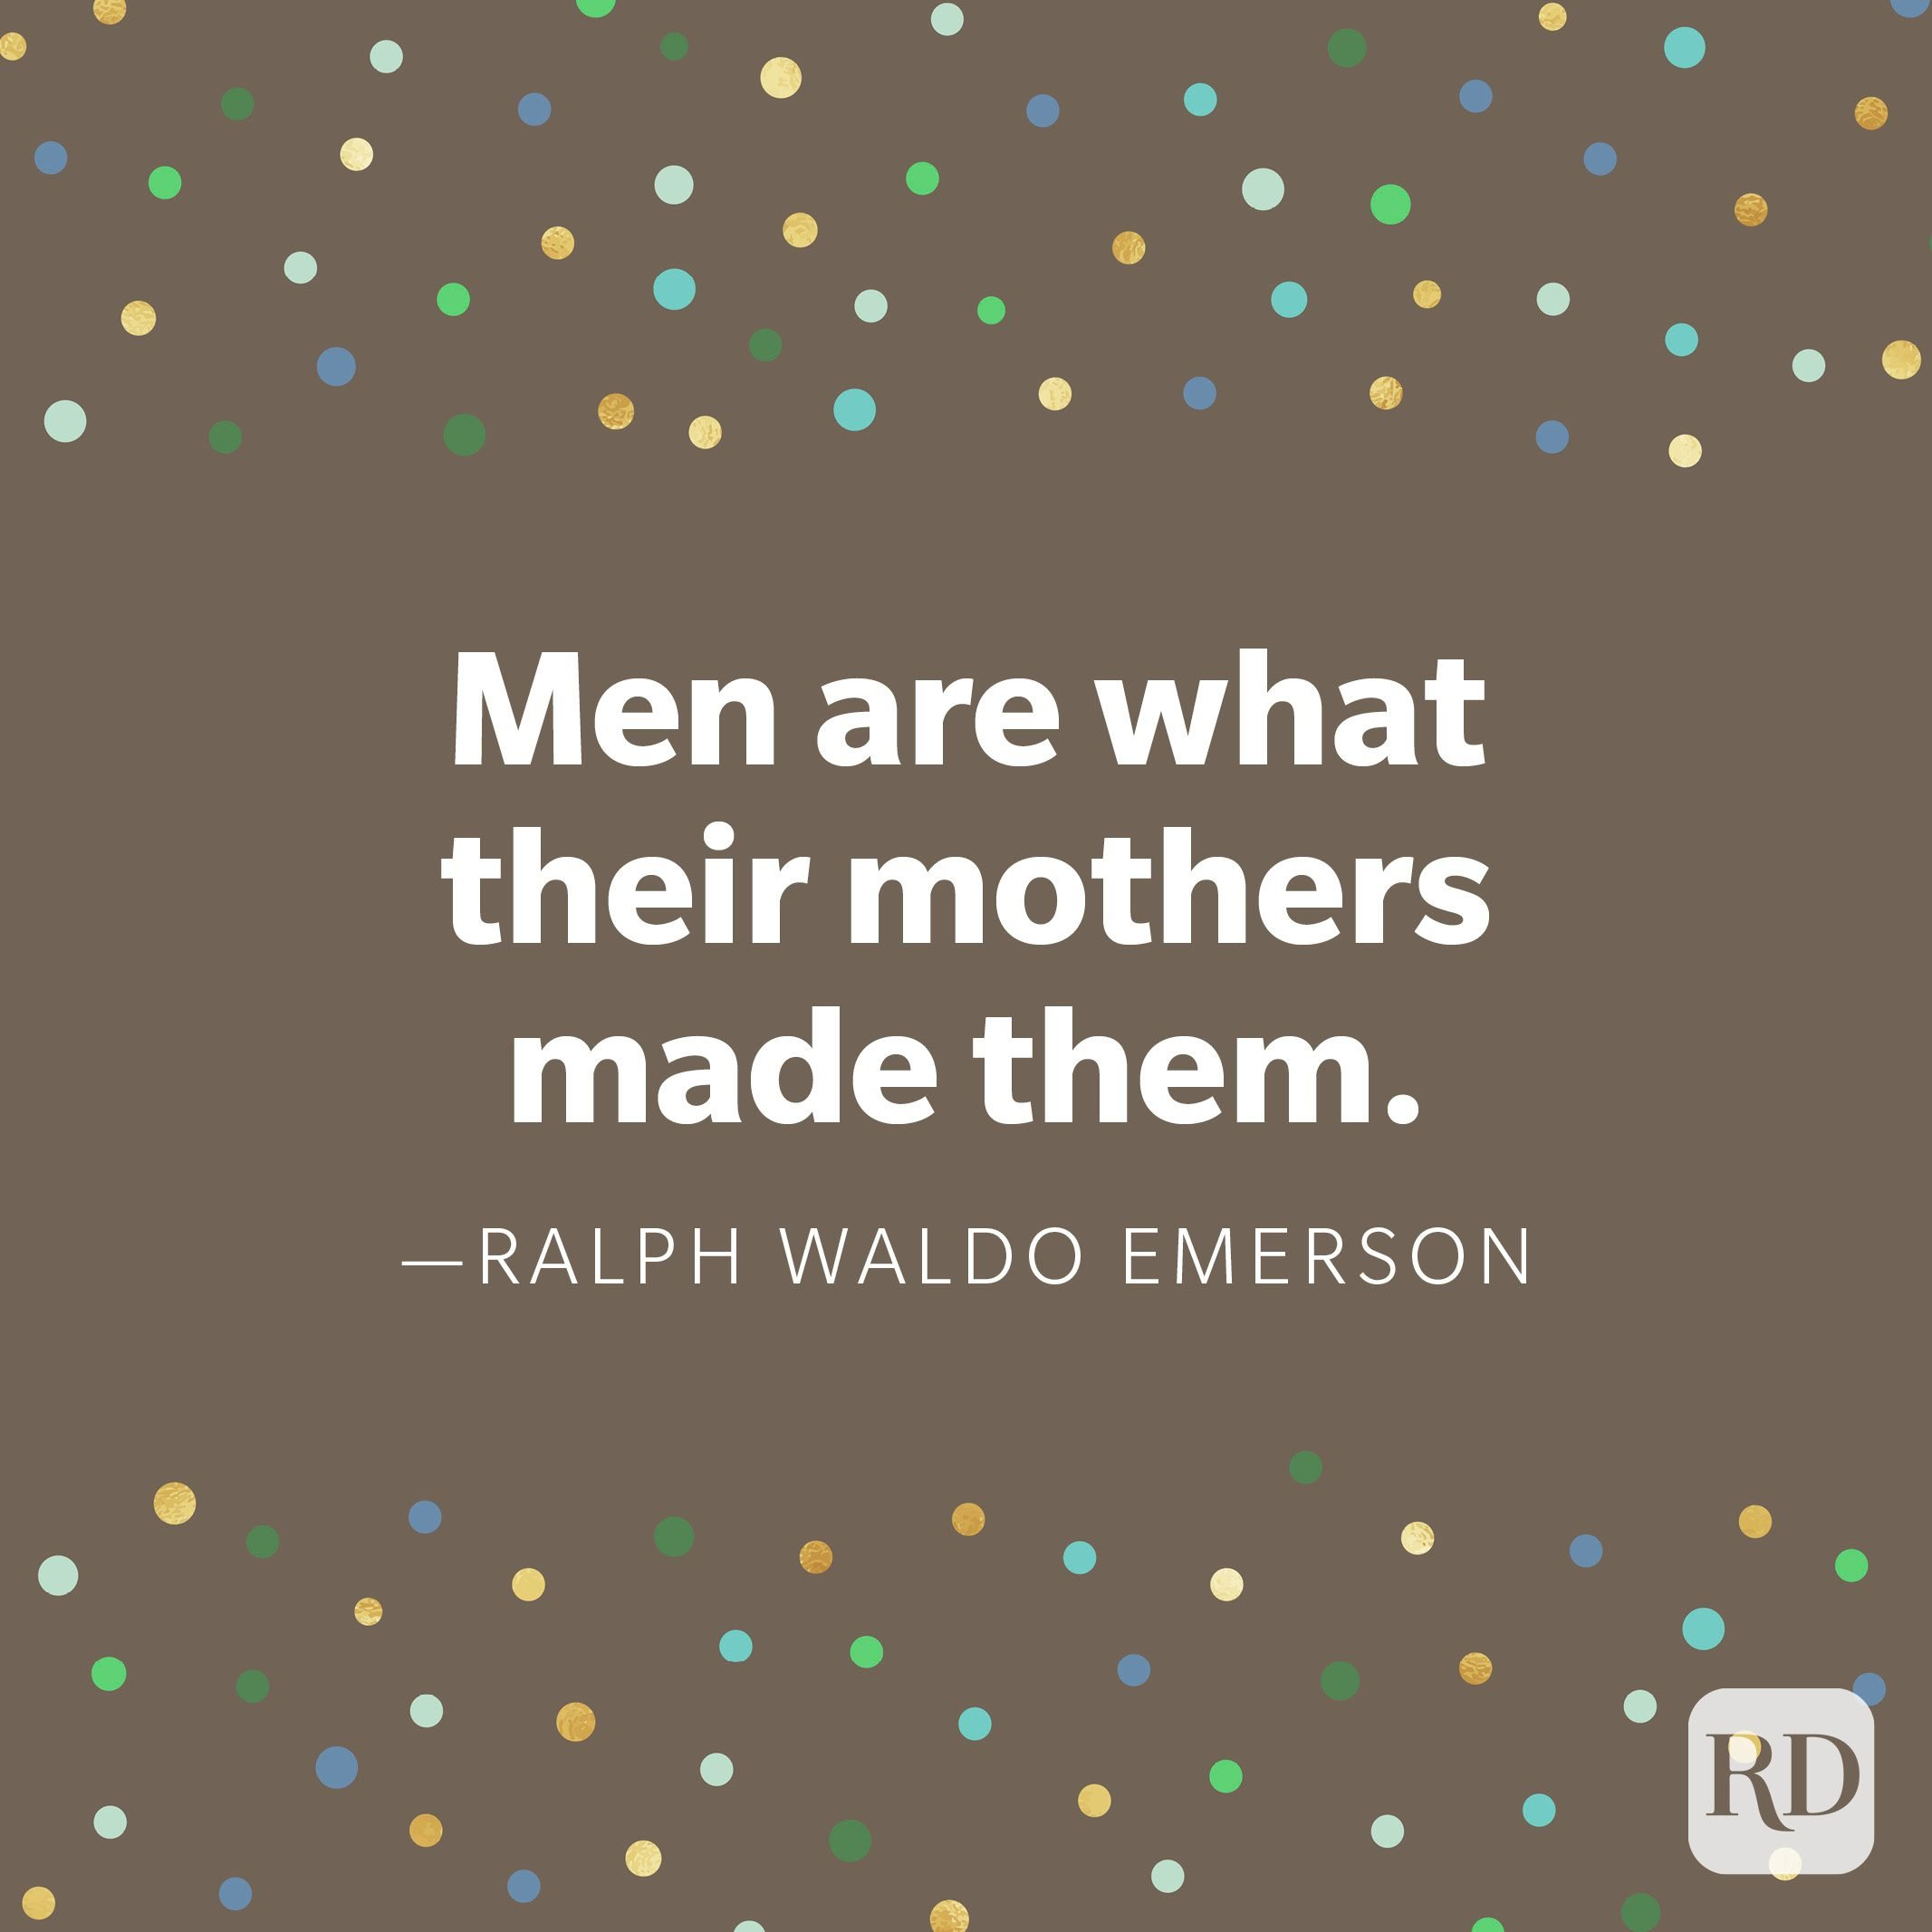 """Men are what their mothers made them."" —Ralph Waldo Emerson."